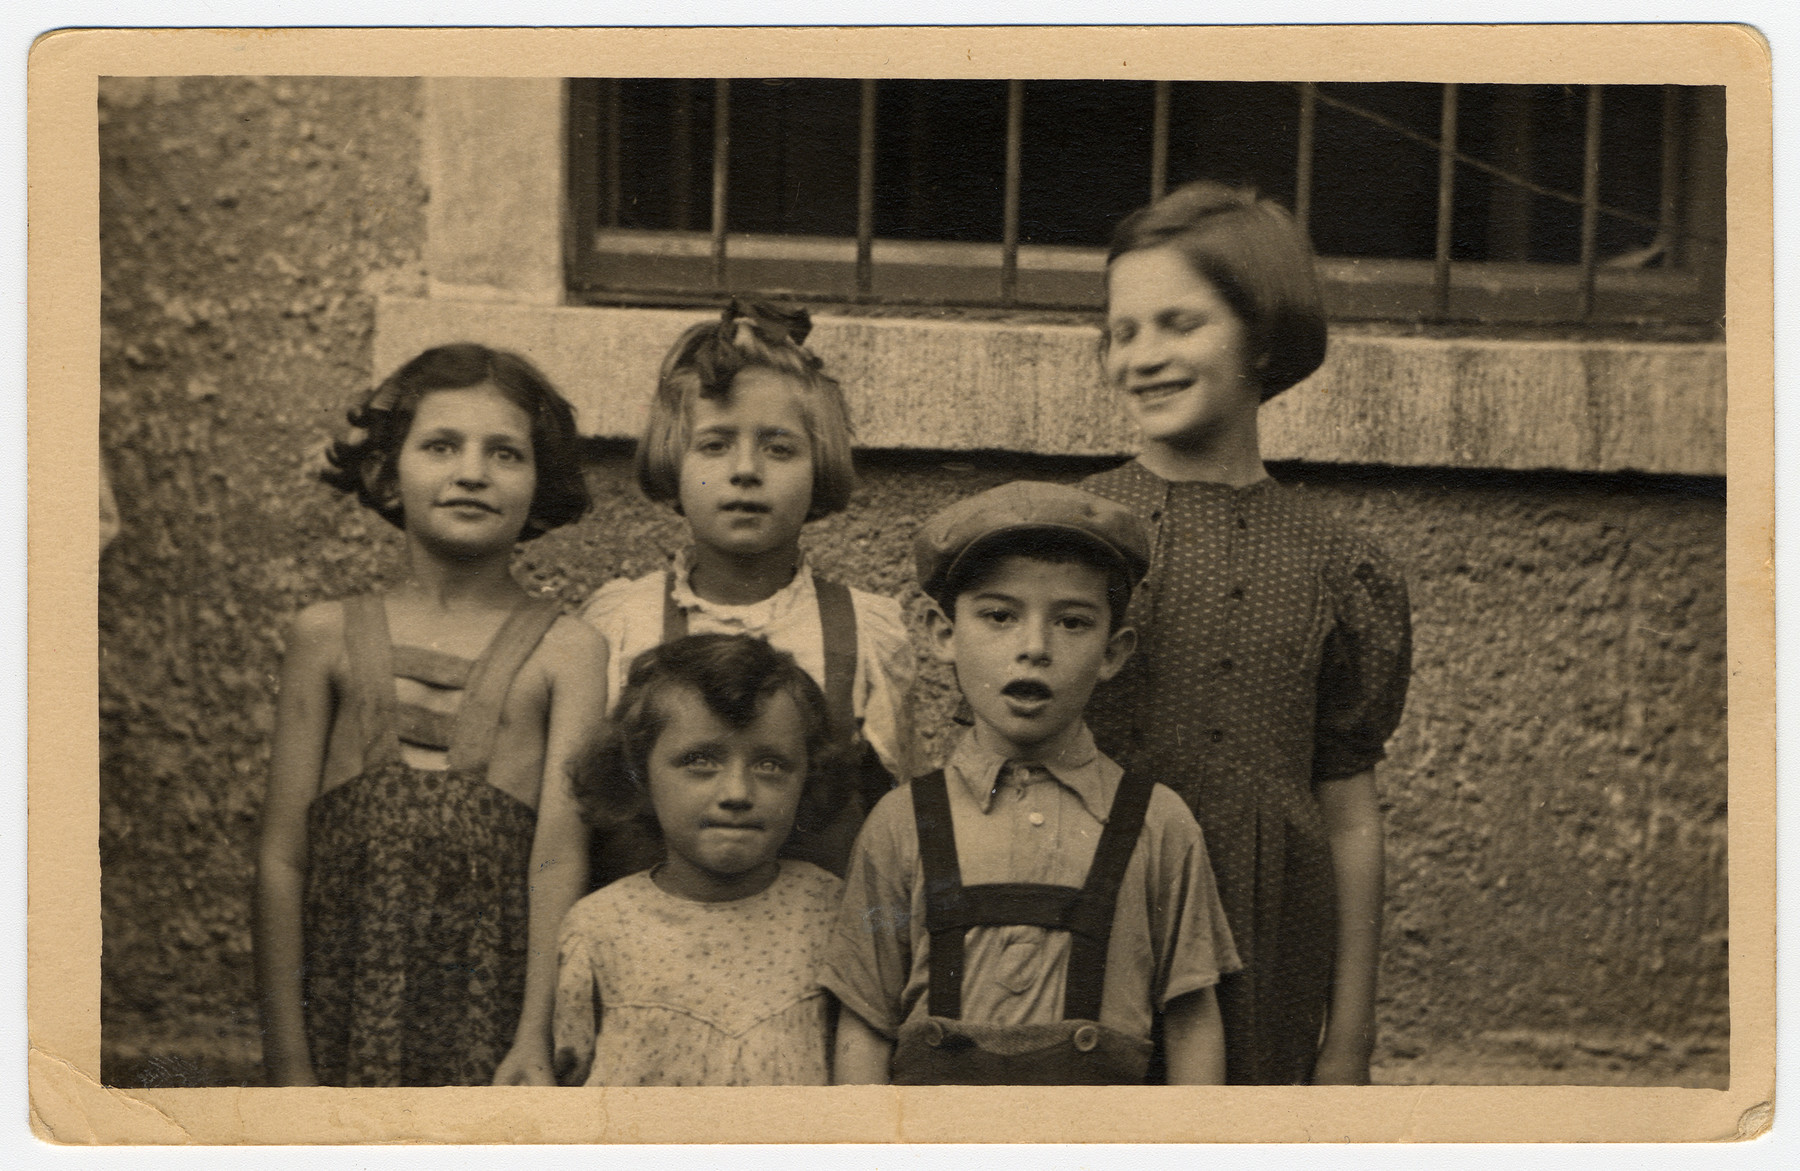 A group of children in the Salzburg Displaced Persons Camp.  Among those pictured are Lusia Fenster (later Lucy Gertner), front row left; Channah Kaplan (later Charlotte Borofsky) on the far left; and Shainka Kaplan (later Janet Wenitsky) on the far right.